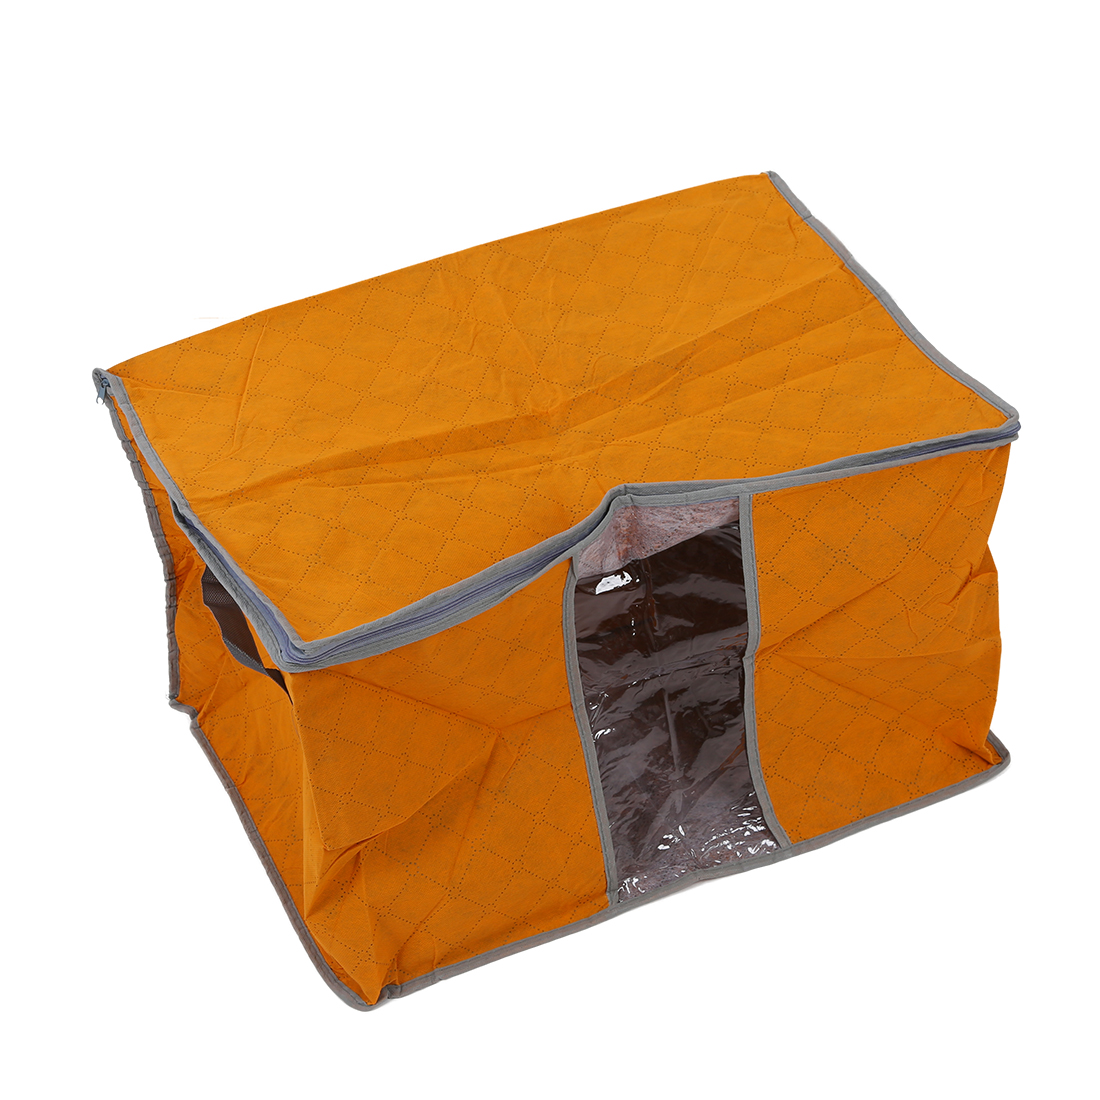 Hot Orange Quilt Blanket Pillow Under Bed Storage Bag Box Container Non-woven Fabric